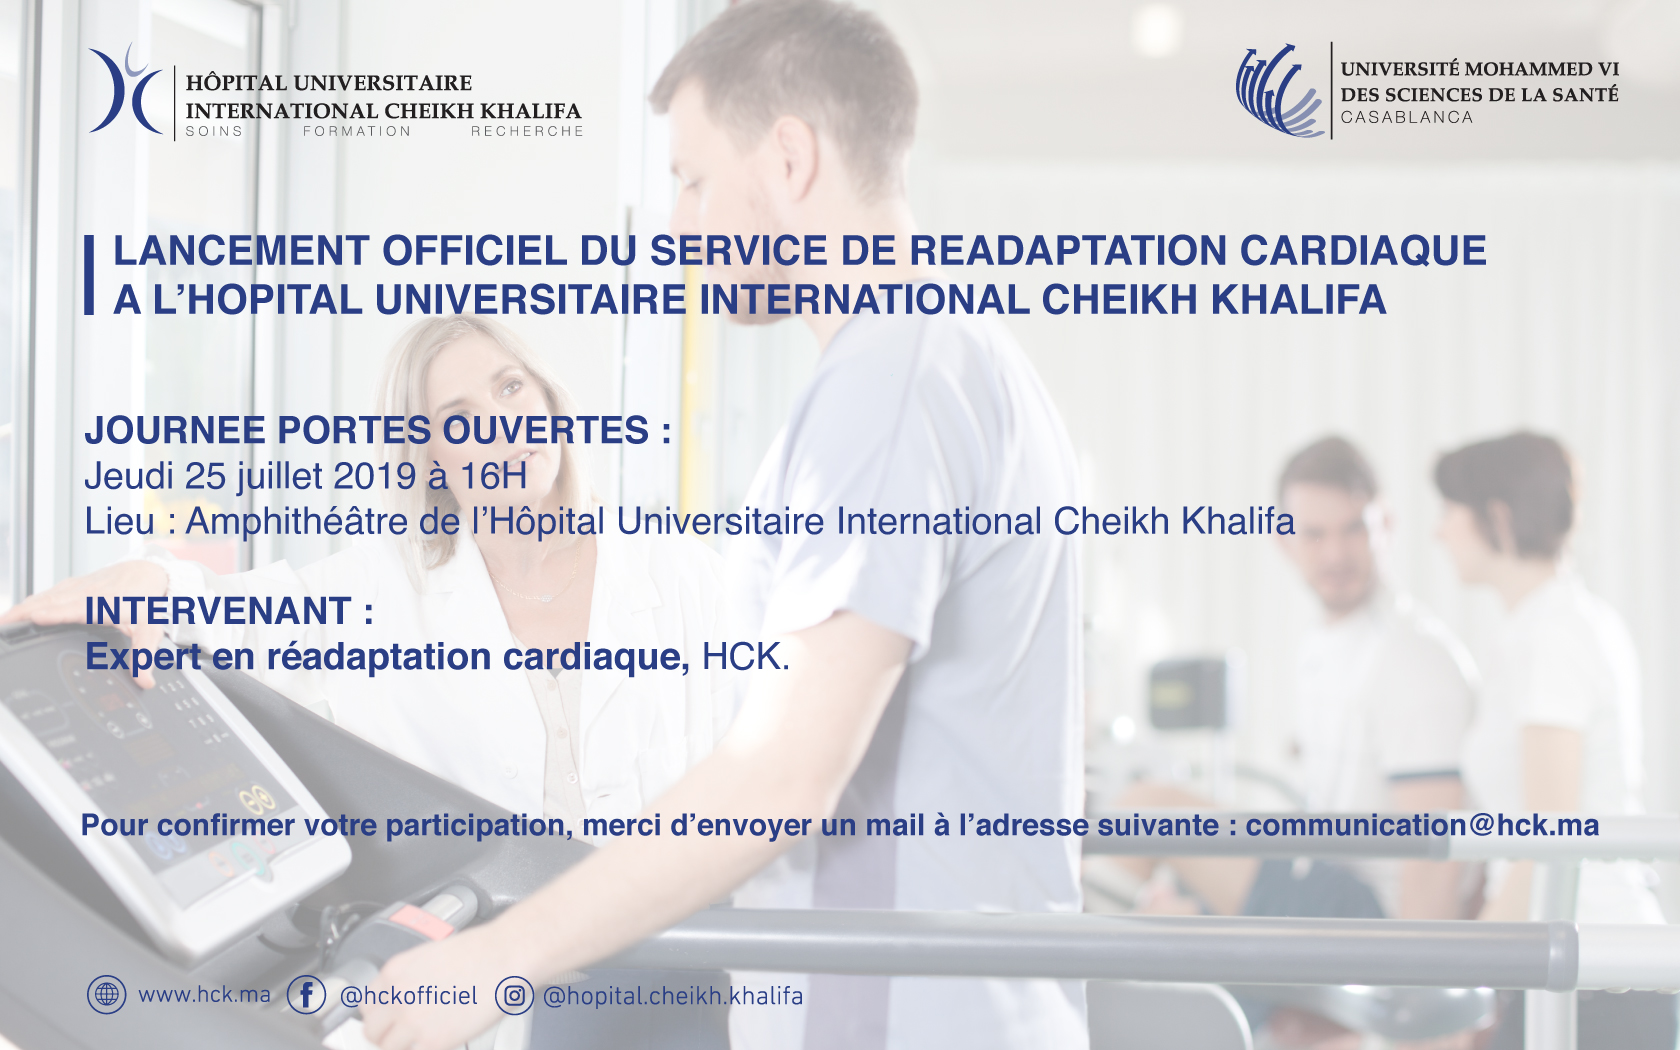 LANCEMENT DE LA READAPTATION CARDIAQUE A L'HOPITAL UNIVERSITAIRE INTERNATIONAL CHEIKH KHALIFA